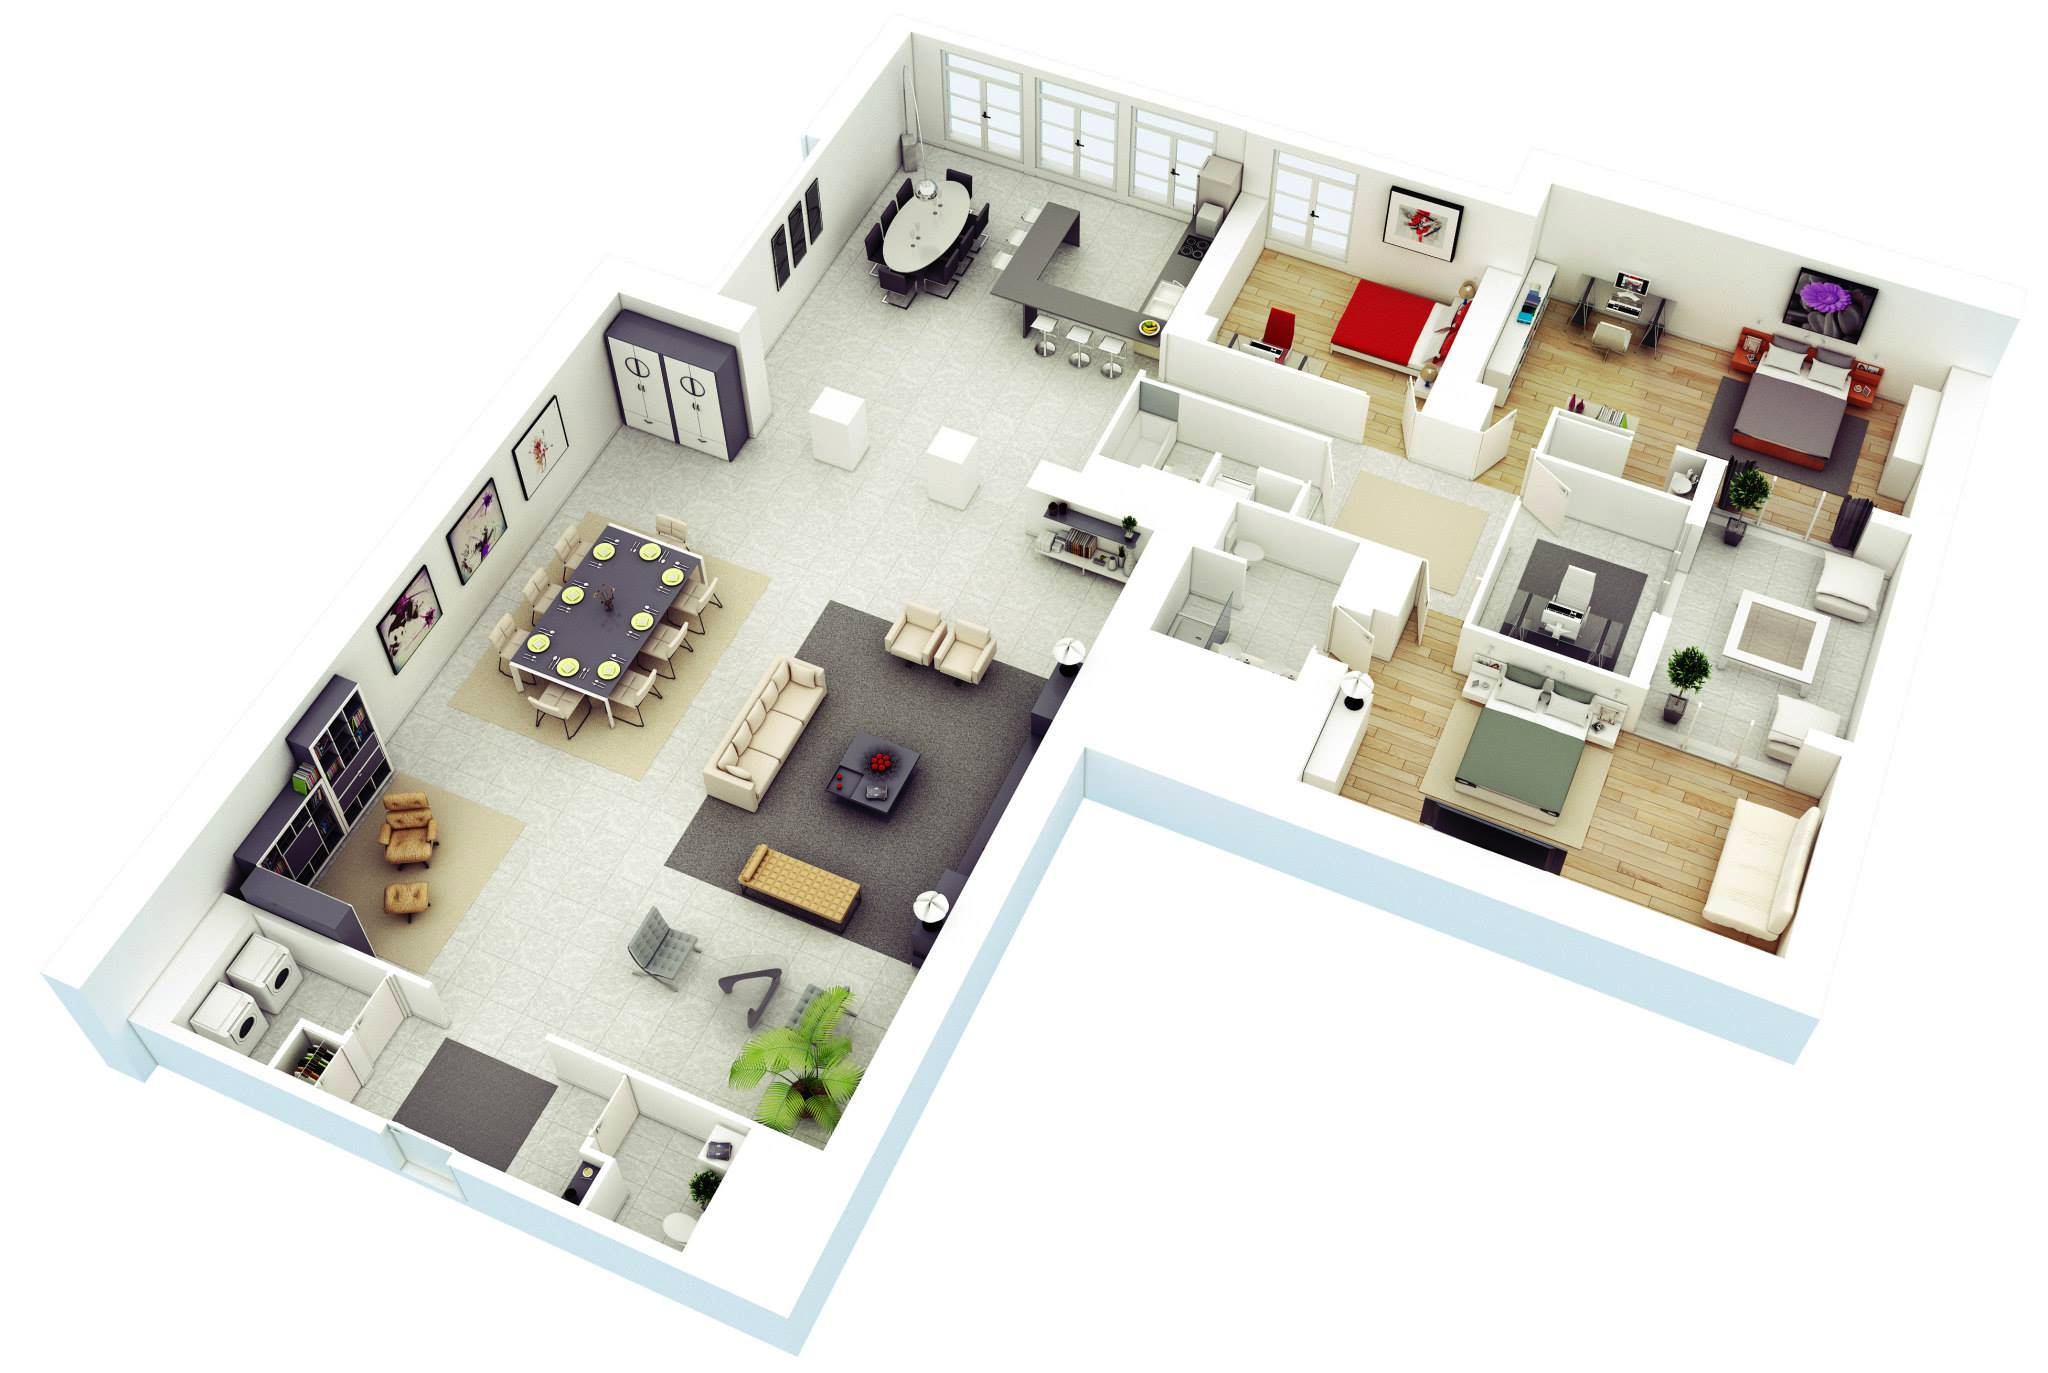 4 bedroom house floor plans 3d - 4 Bedroom House Floor Plans 3d 14